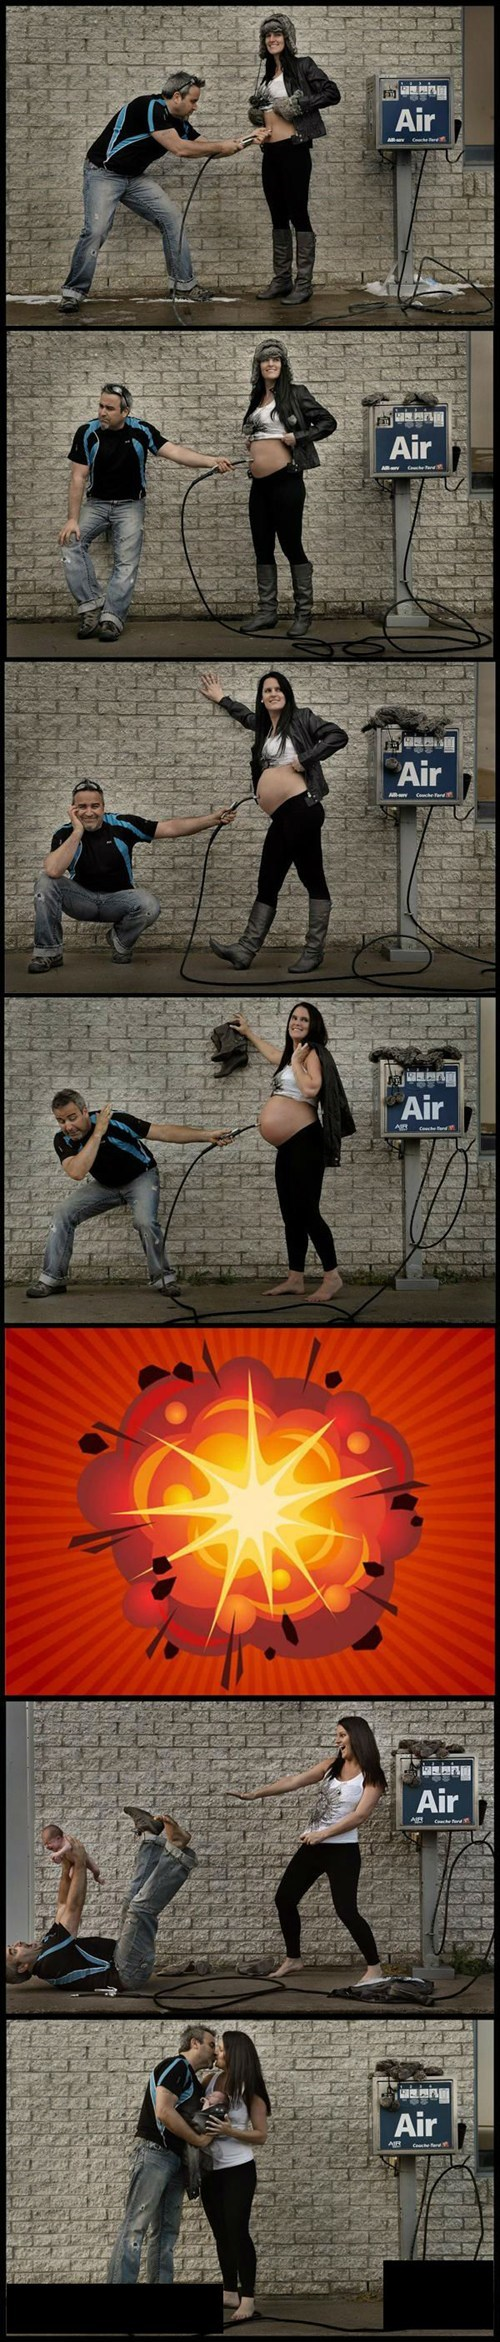 So THAT'S How Babies are Made